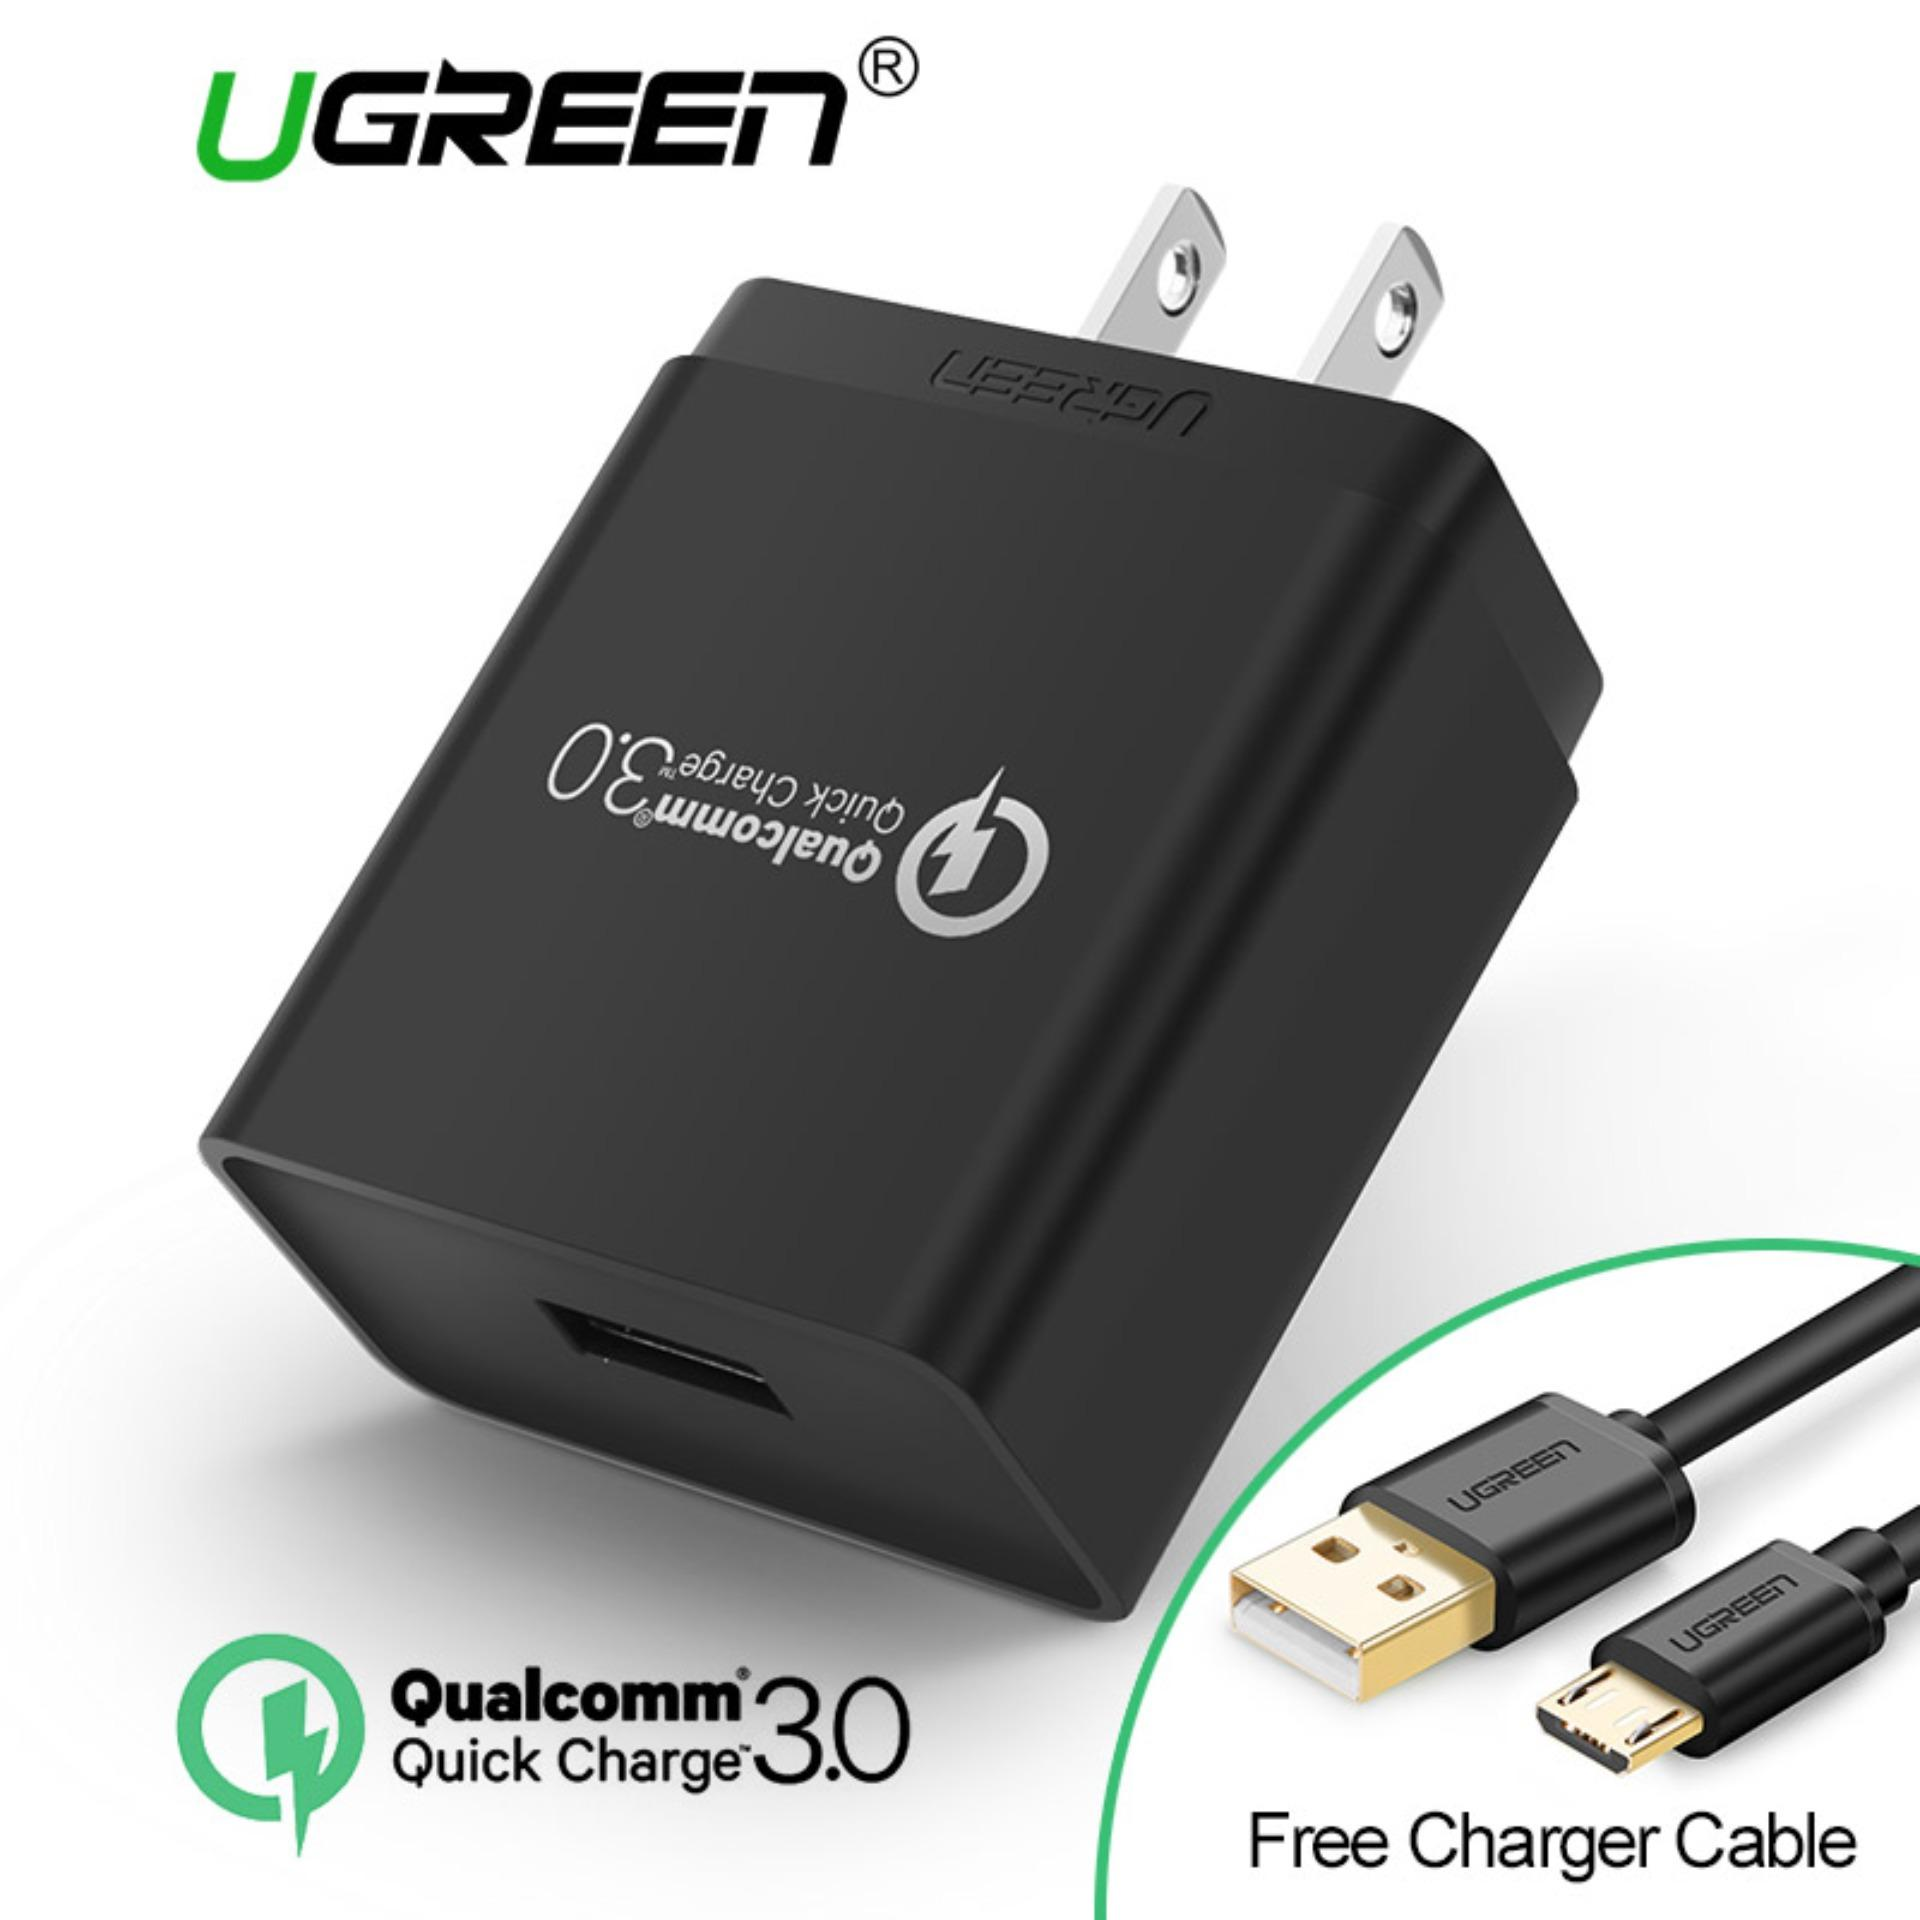 Usb Charger For Sale Travel Prices Brands Specs In Hub W Auto Power On Ugreen 2 Pin Us Plug Qualcomm Certified Quick 30 18w Wall With Free